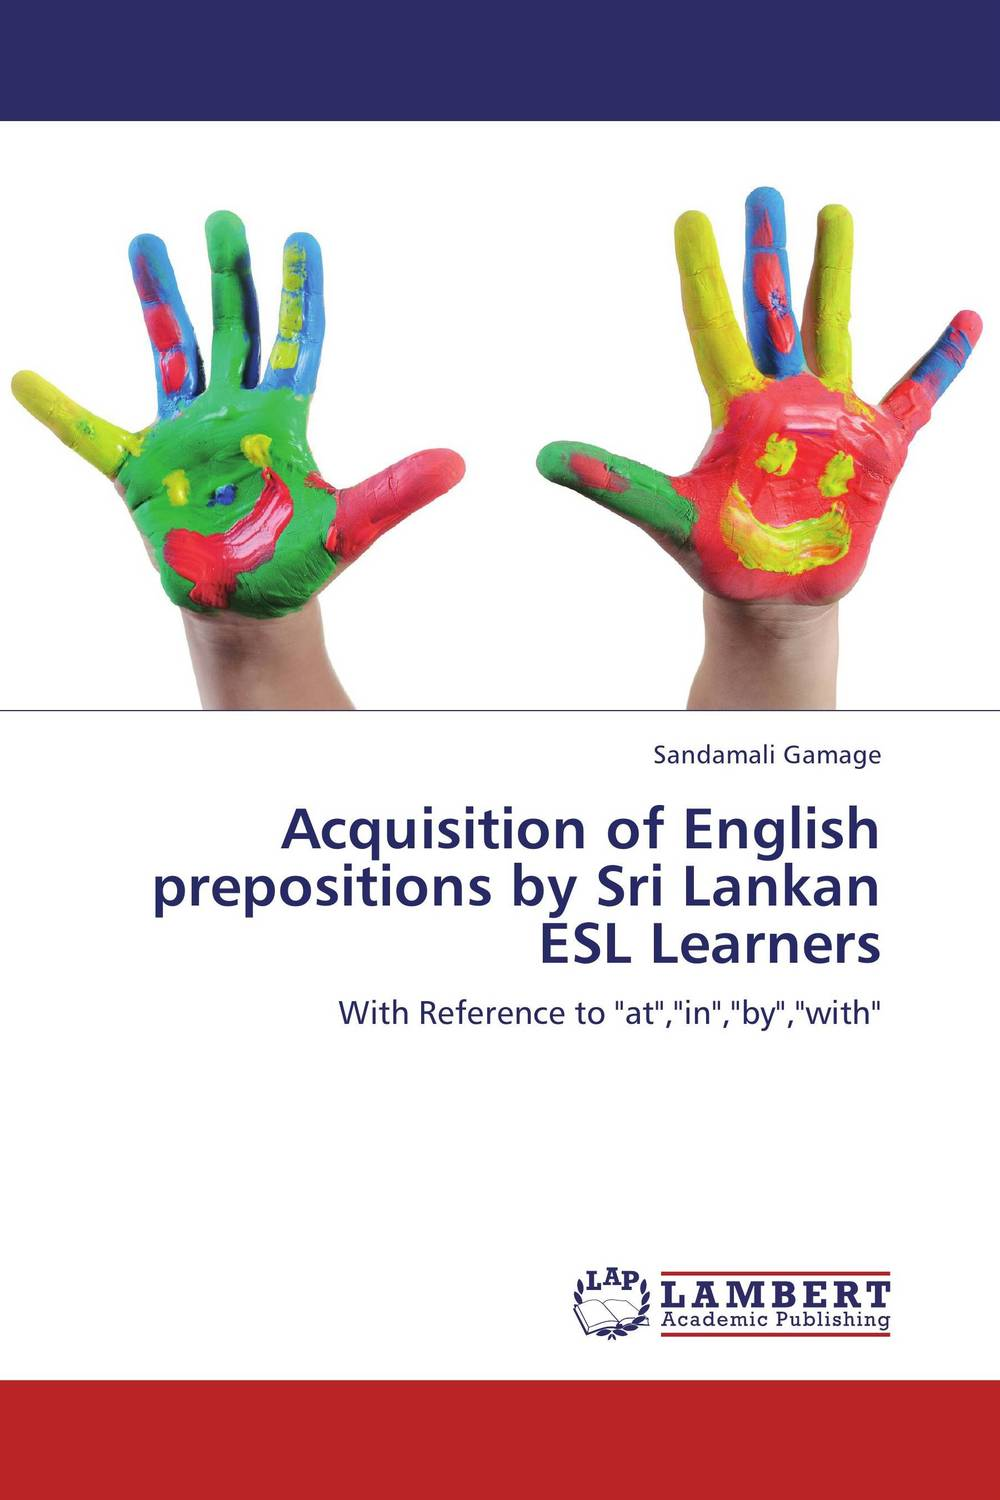 Acquisition of English prepositions by Sri Lankan ESL Learners games [a1] l ile aux prepositions